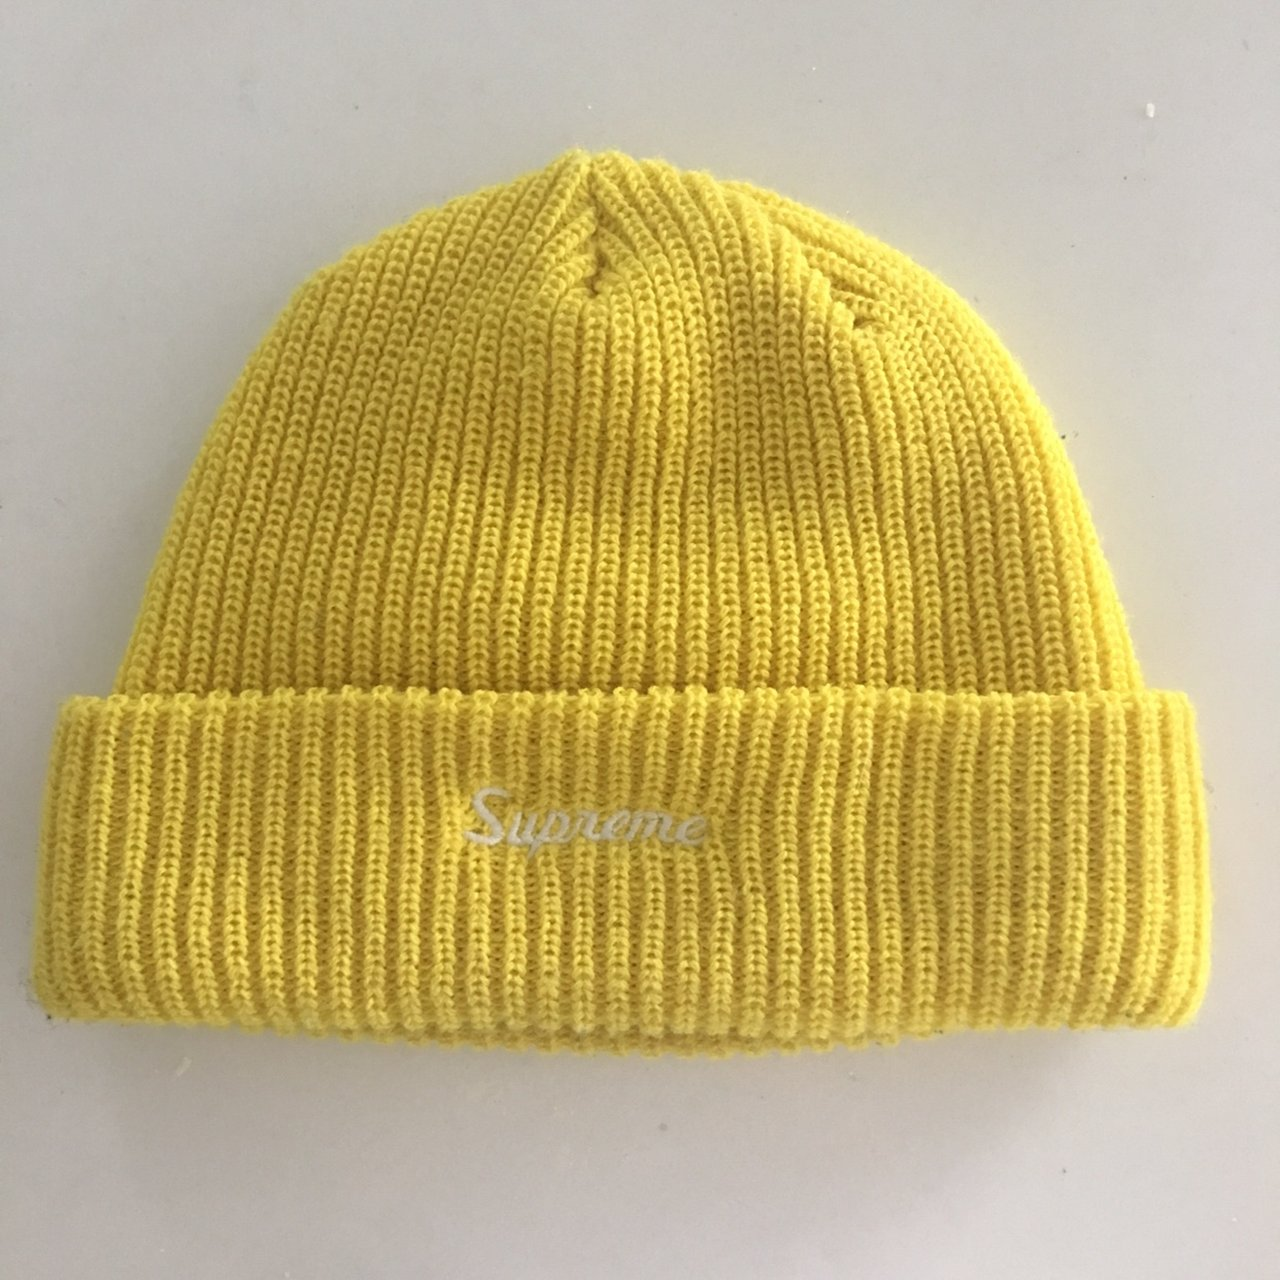 19255f527fa Supreme yellow FW18 beanie hat - never worn - Depop